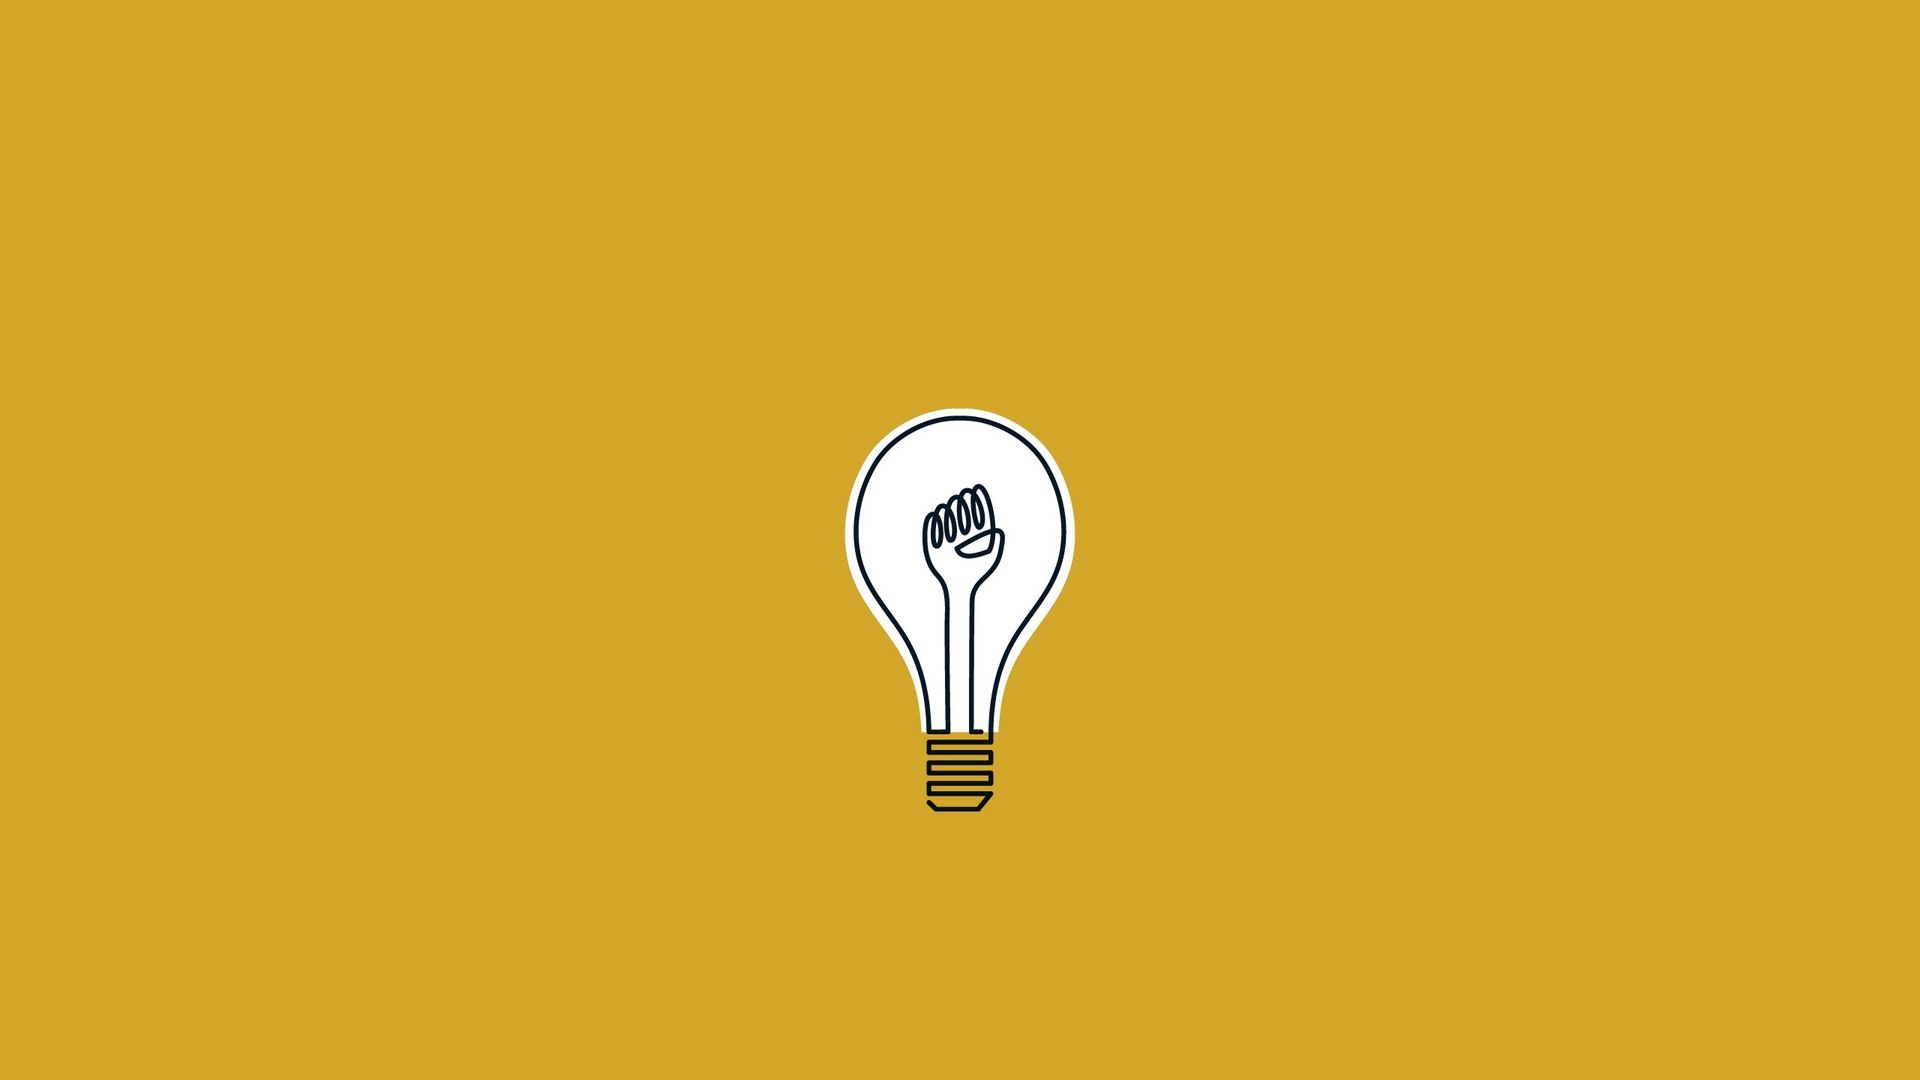 Minimal Bulb Artistic HD Wallpaper Aesthetic desktop wallpaper 1920x1080